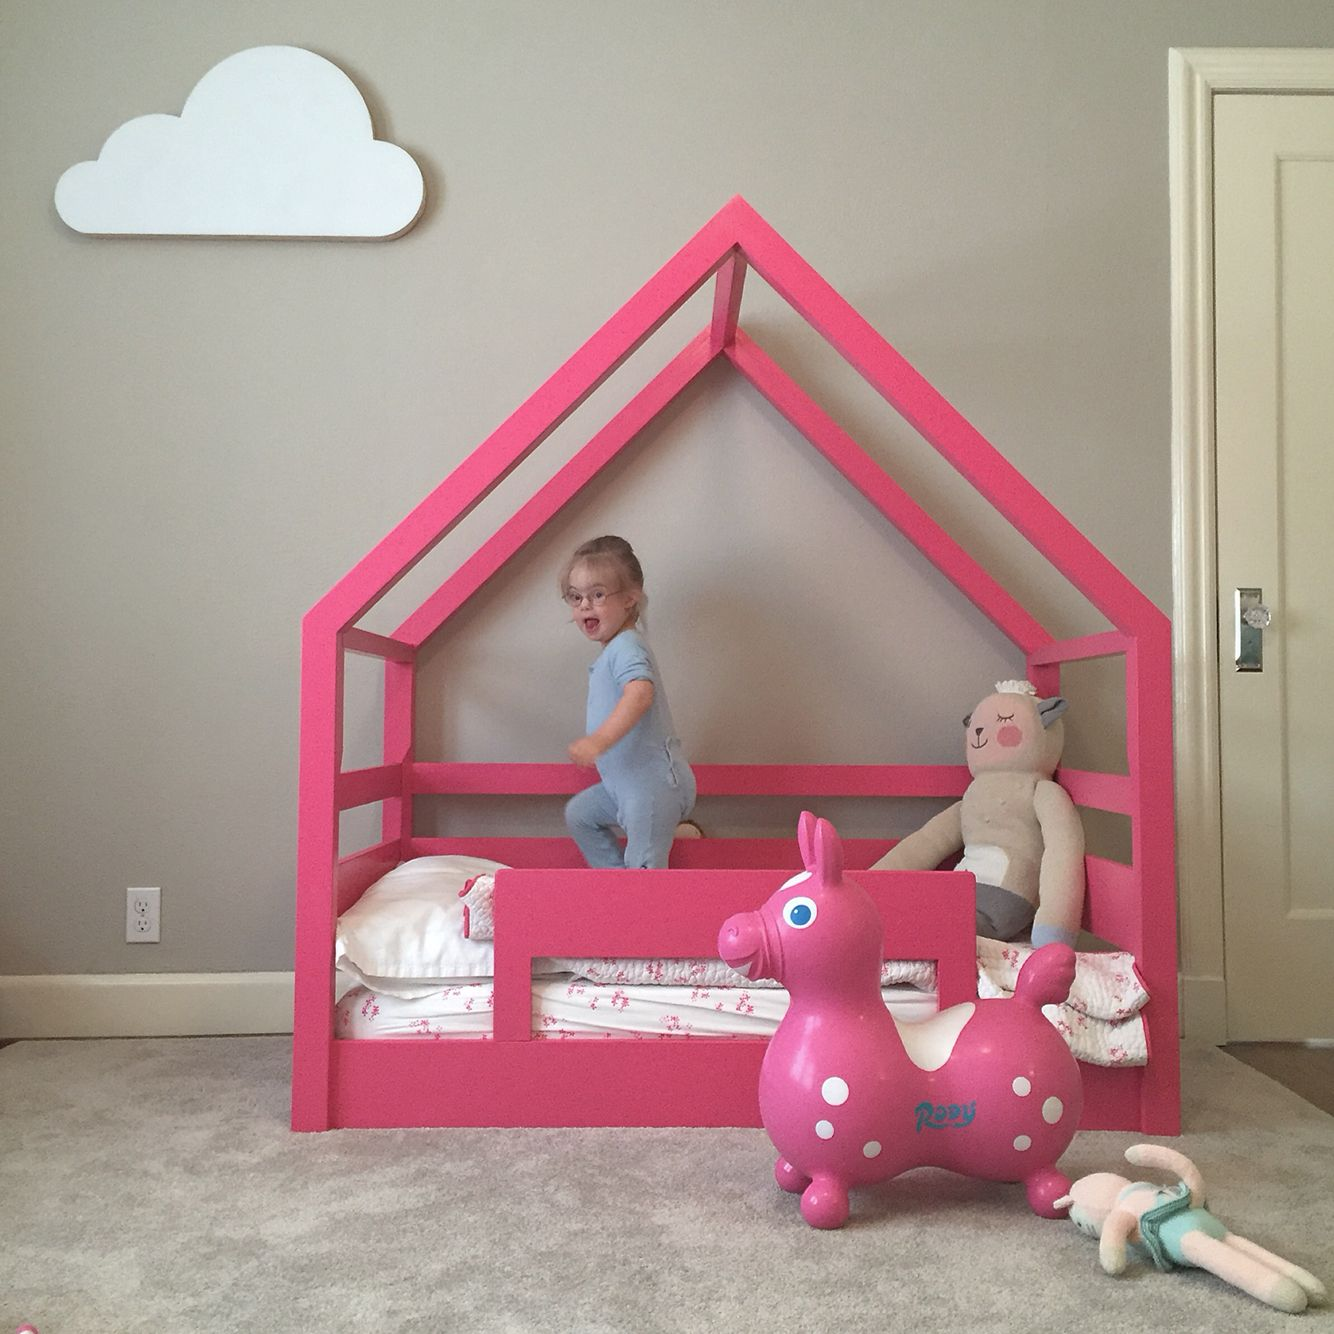 Pink house frame bed and white cloud. Kids bed with rails. Kids house bed. Pink bed. White cloud wall art. By Scott Taylor